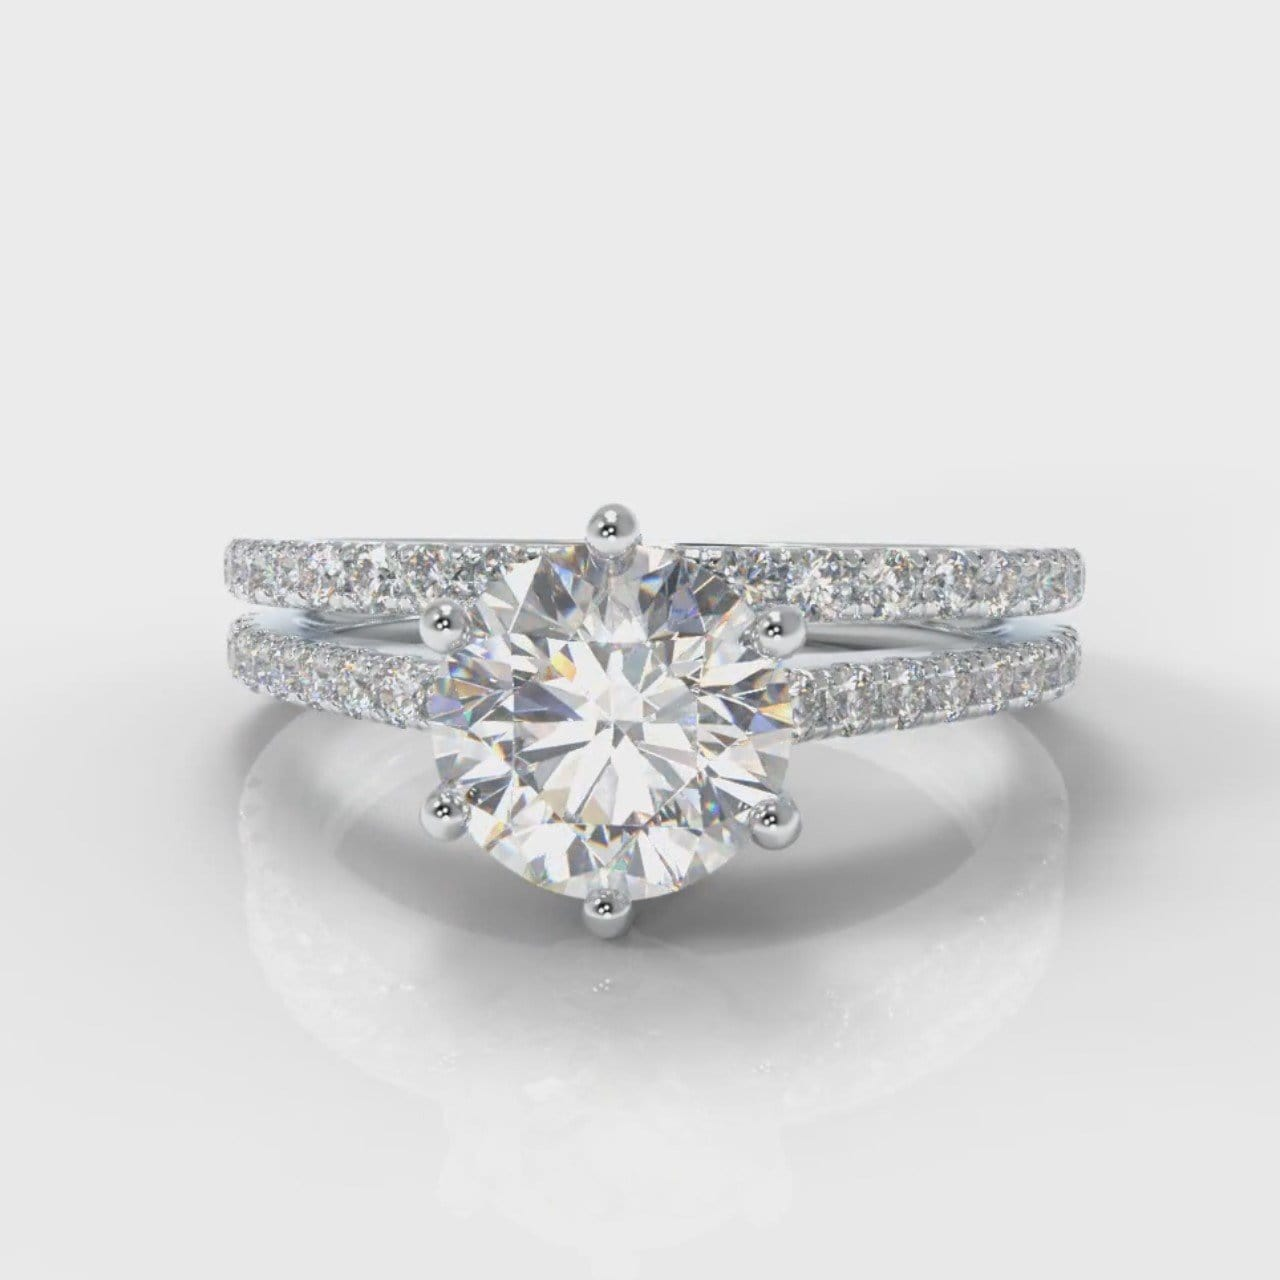 Star Petite Micropavé Round Brilliant Cut Diamond Bridal Set